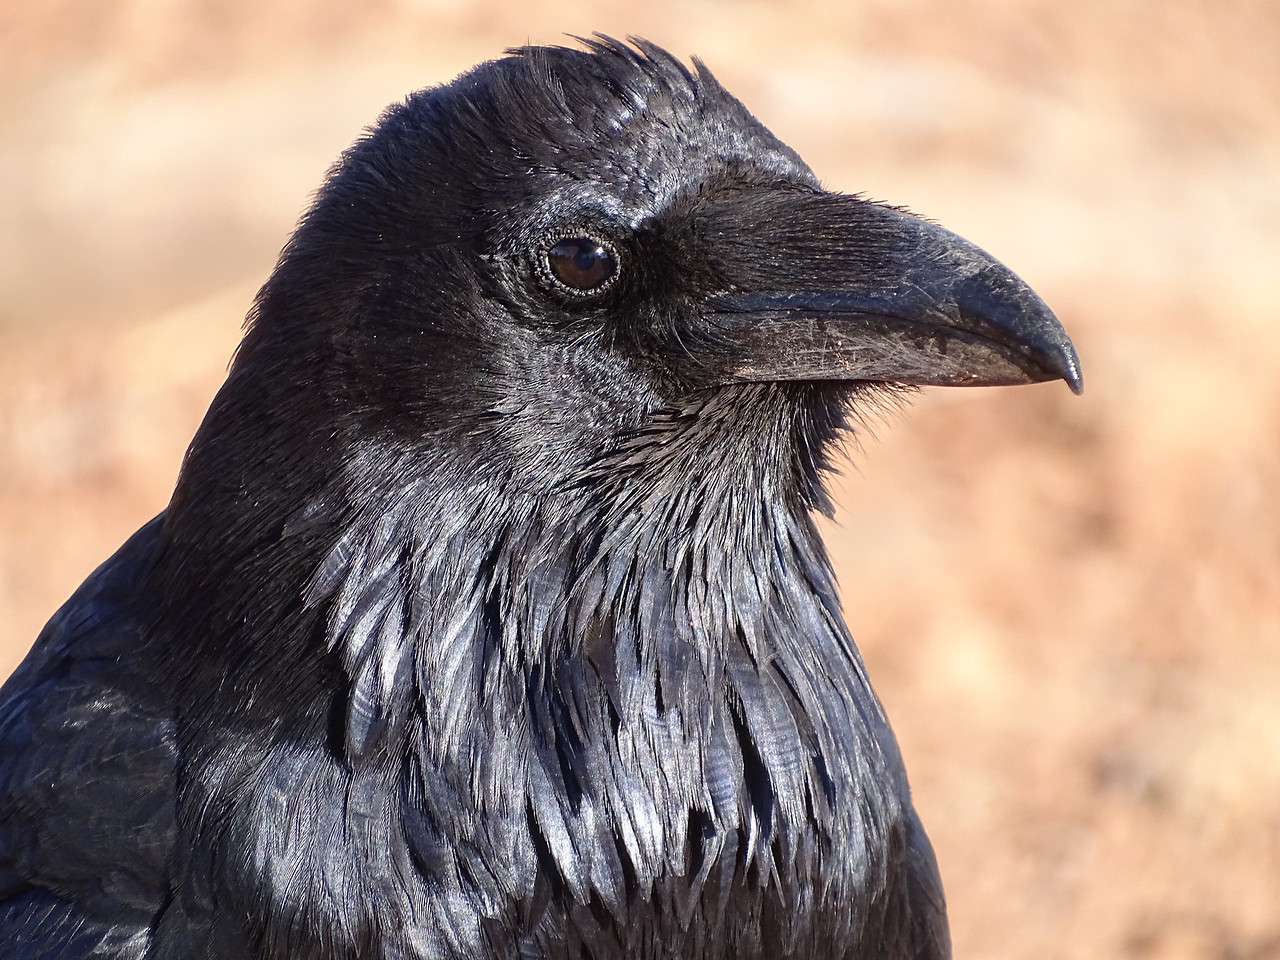 I didn't realize ravens had  hooked beaks